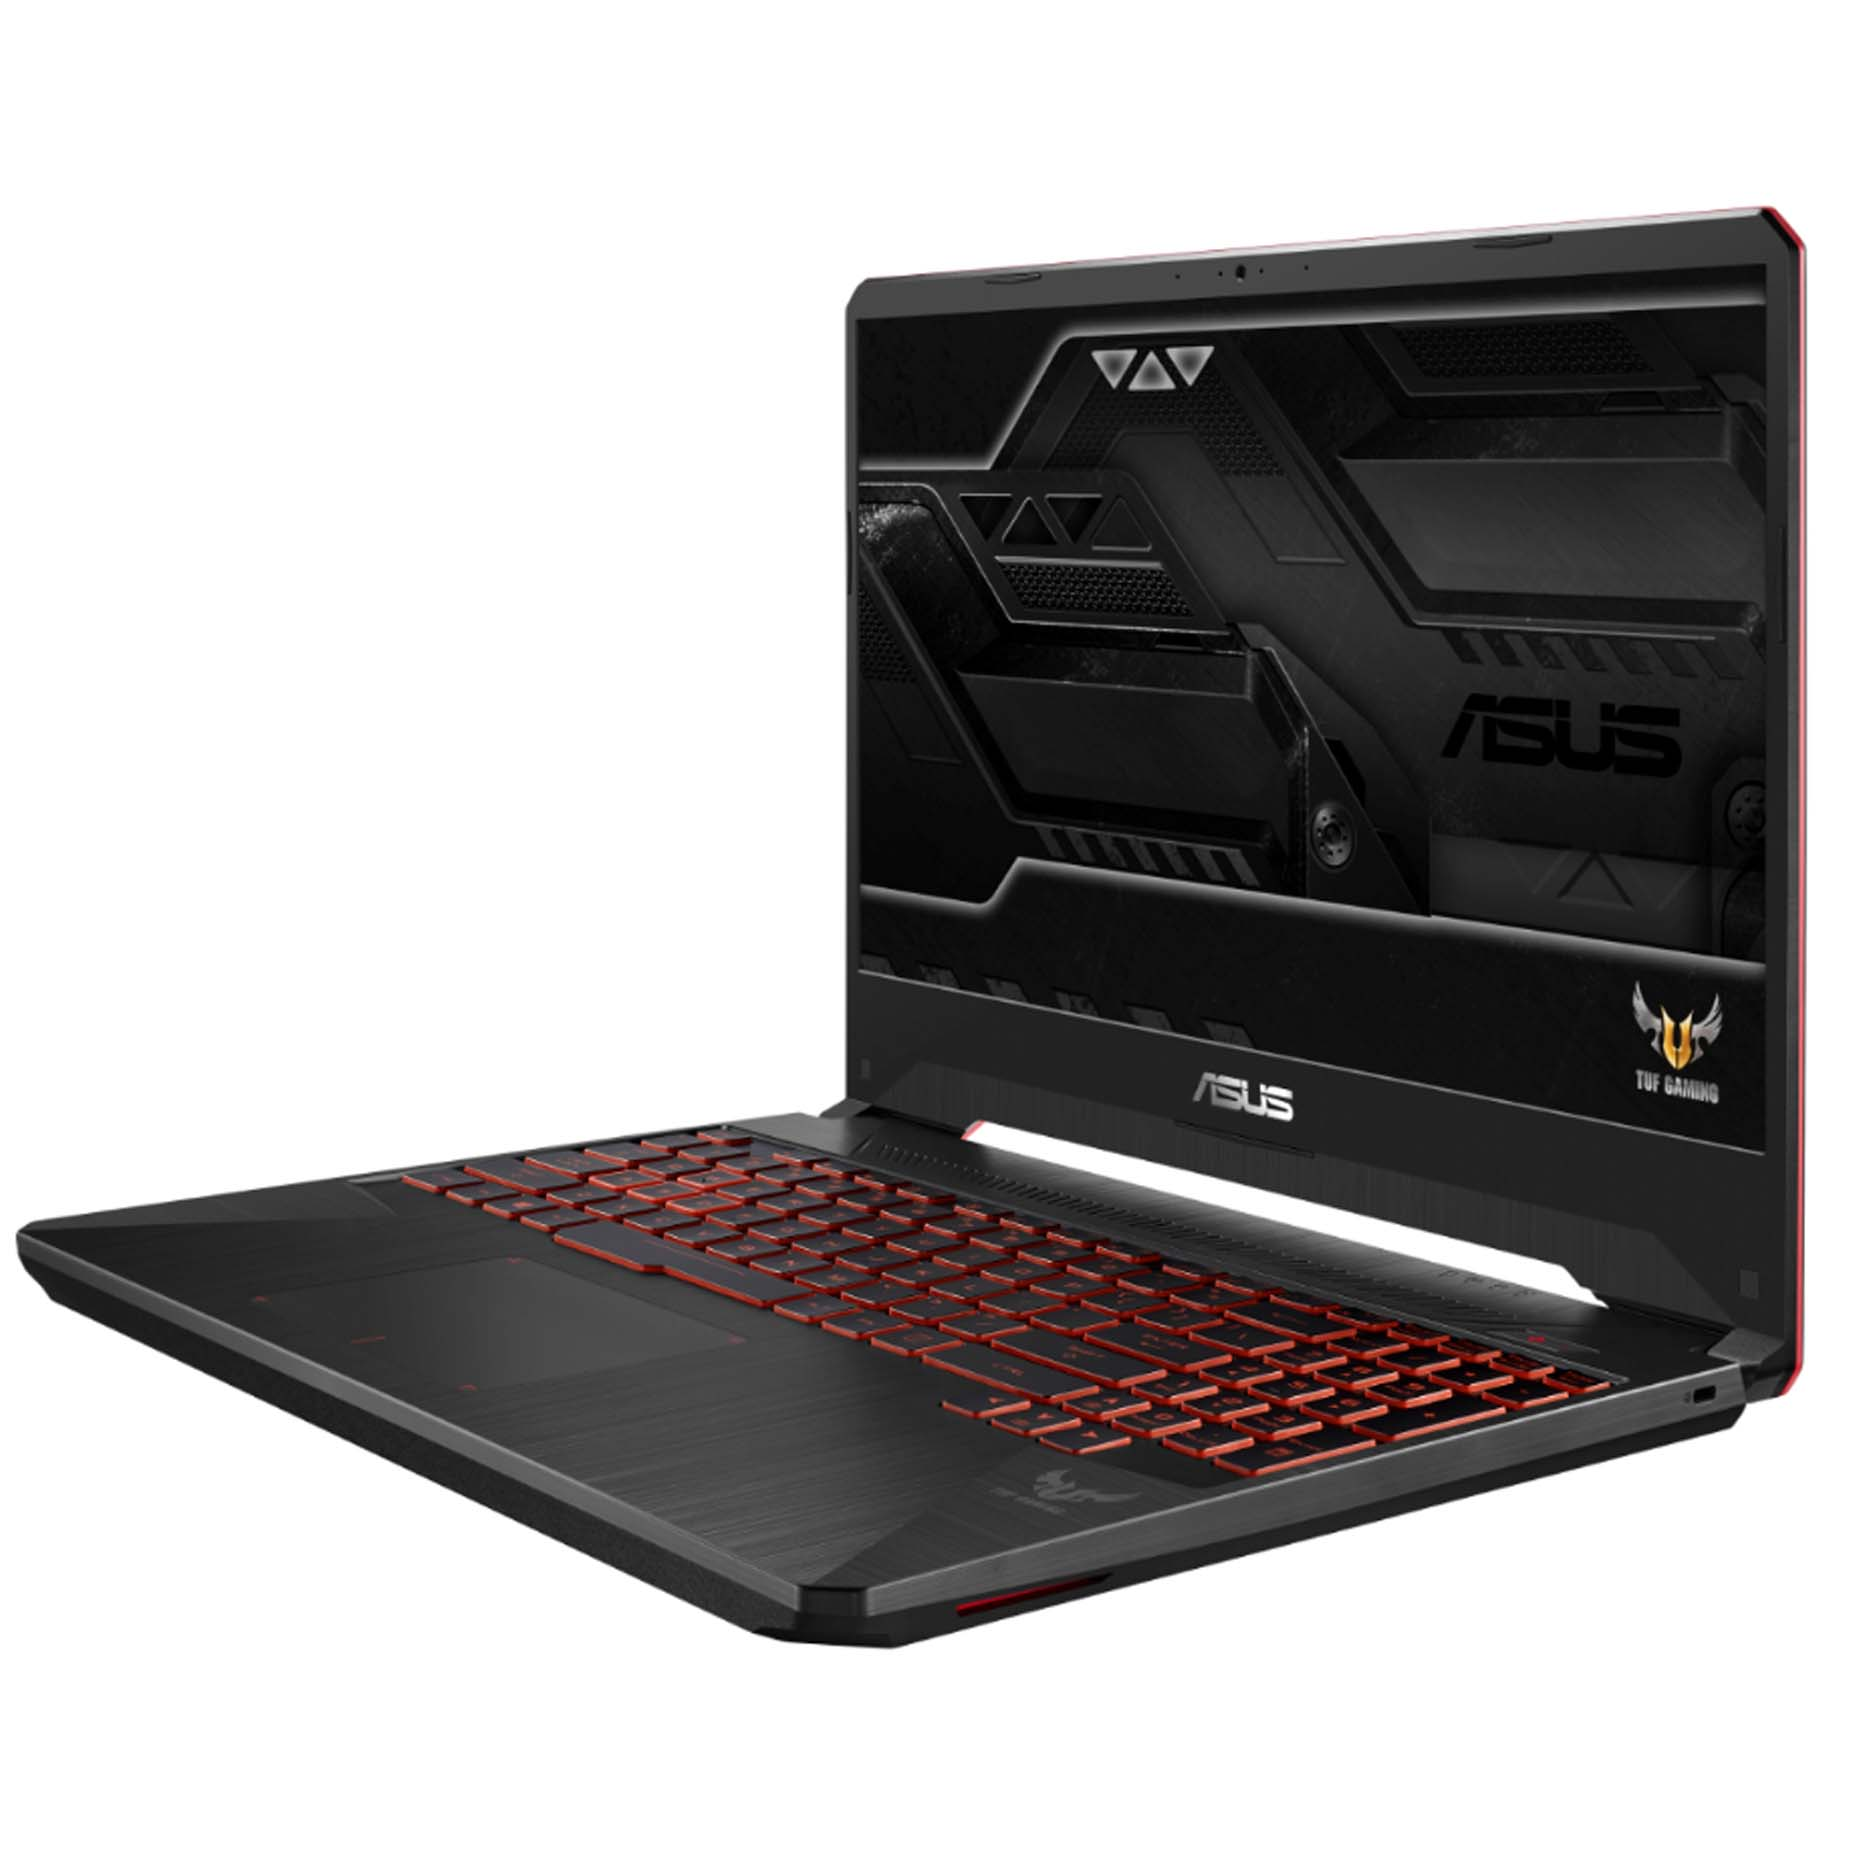 Harga Asus TUF Gaming FX505GM-I7601T Laptop i7-8750 8GB 1TB 15.6-inch Win 10